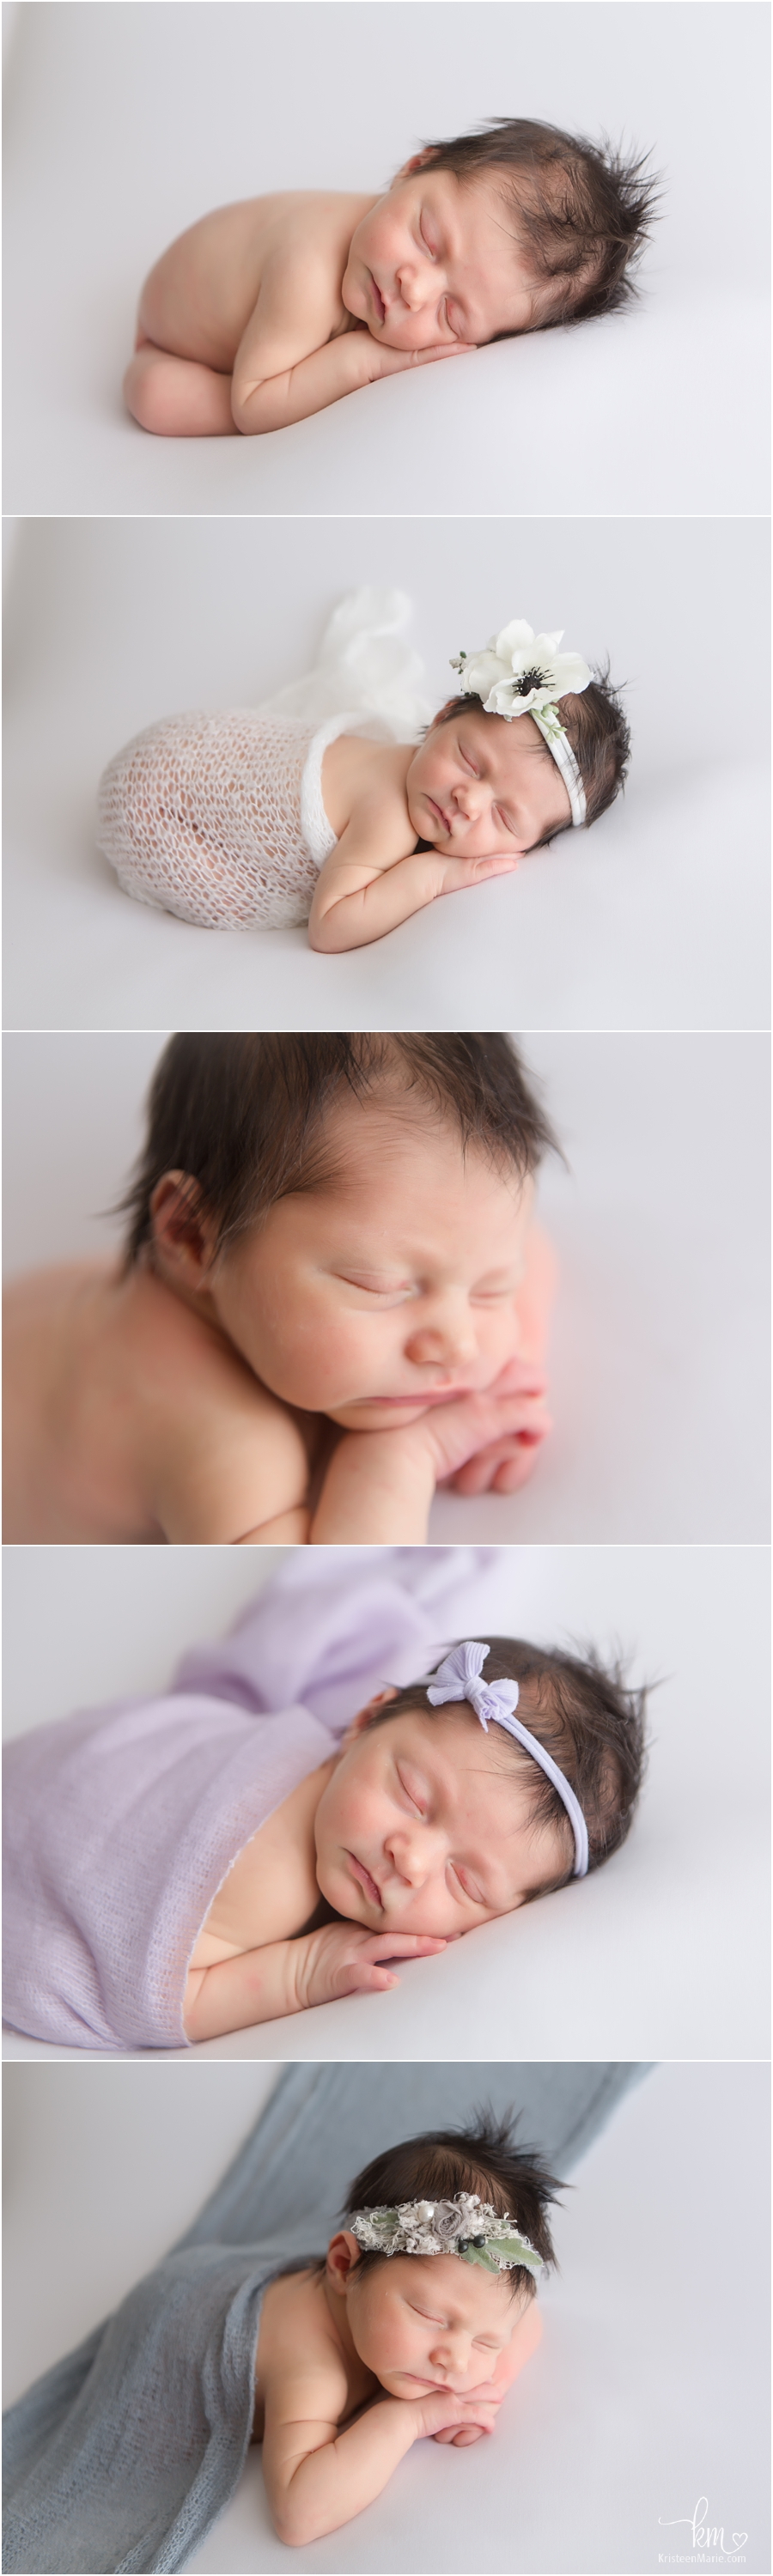 sleeping newborn baby girl with amazing dark hair